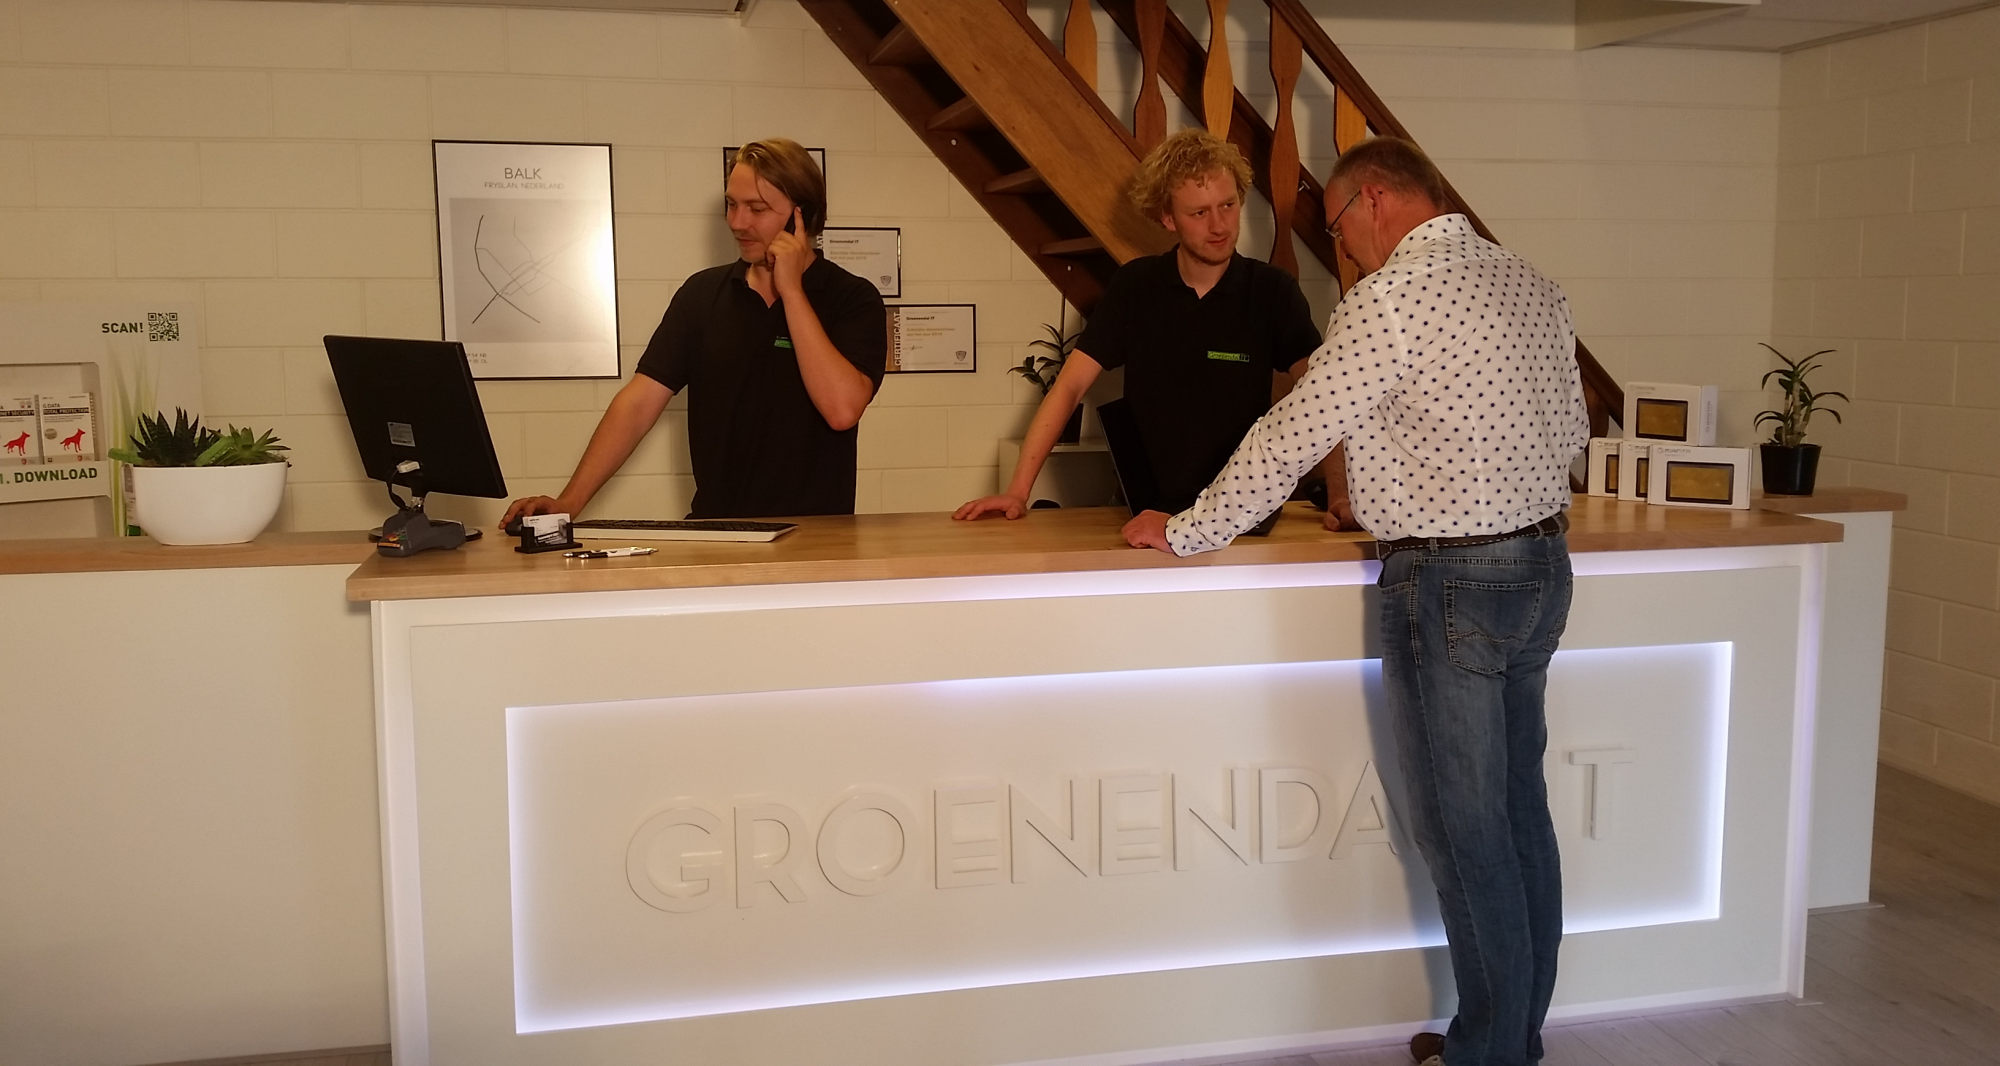 Groenendal IT